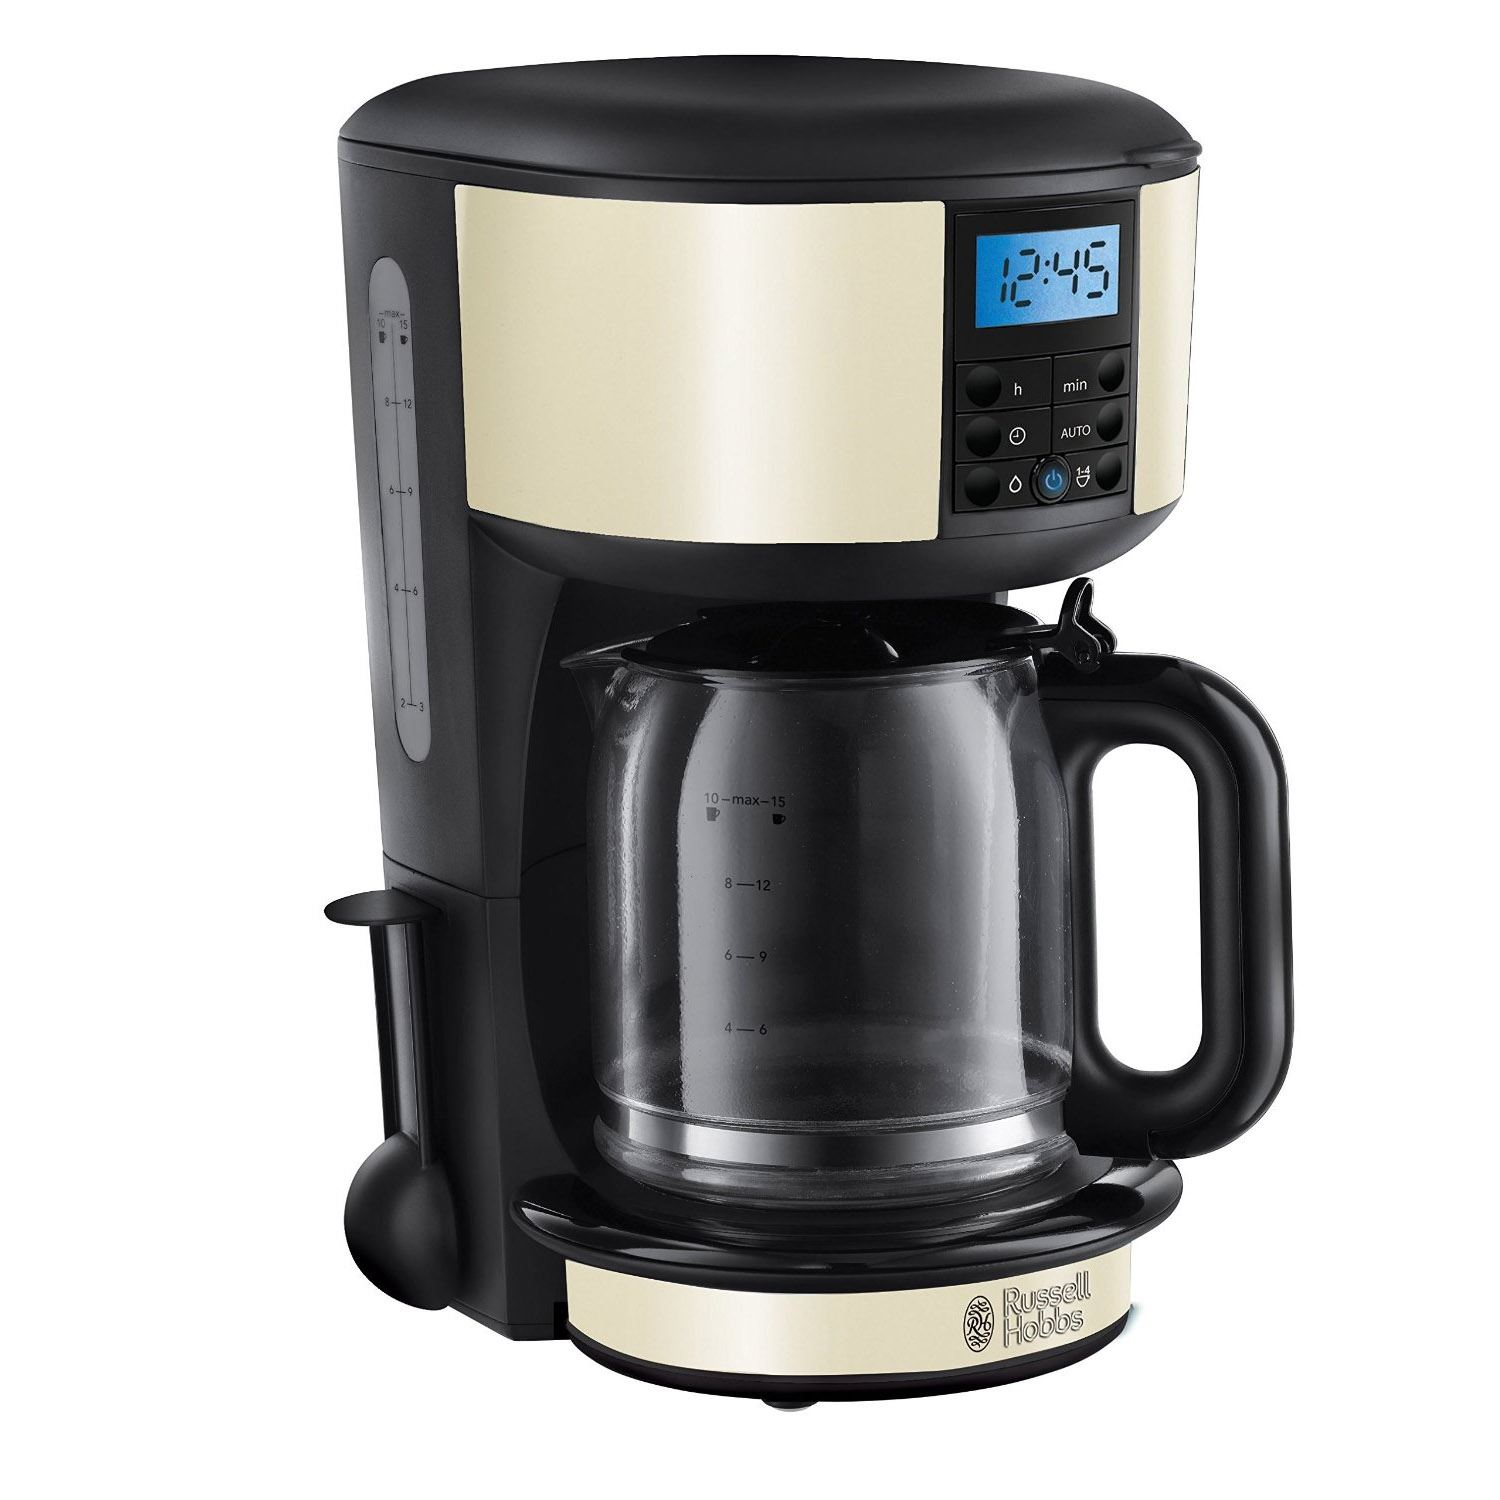 Russell hobbs 20683 electric 10 cup legacy filter coffee New coffee machine